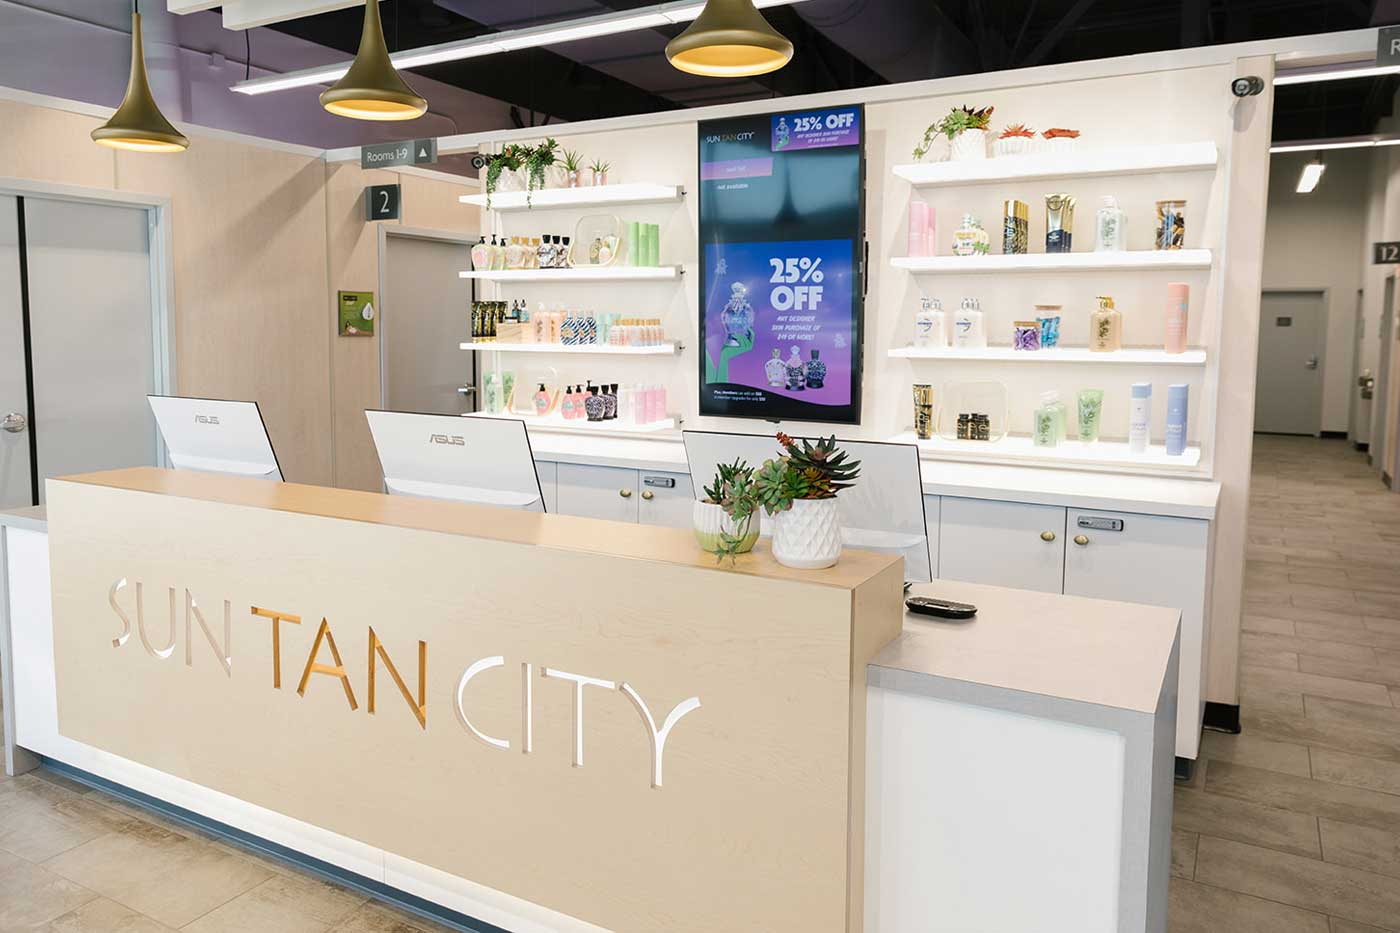 Sun Tan City salon inside front counter